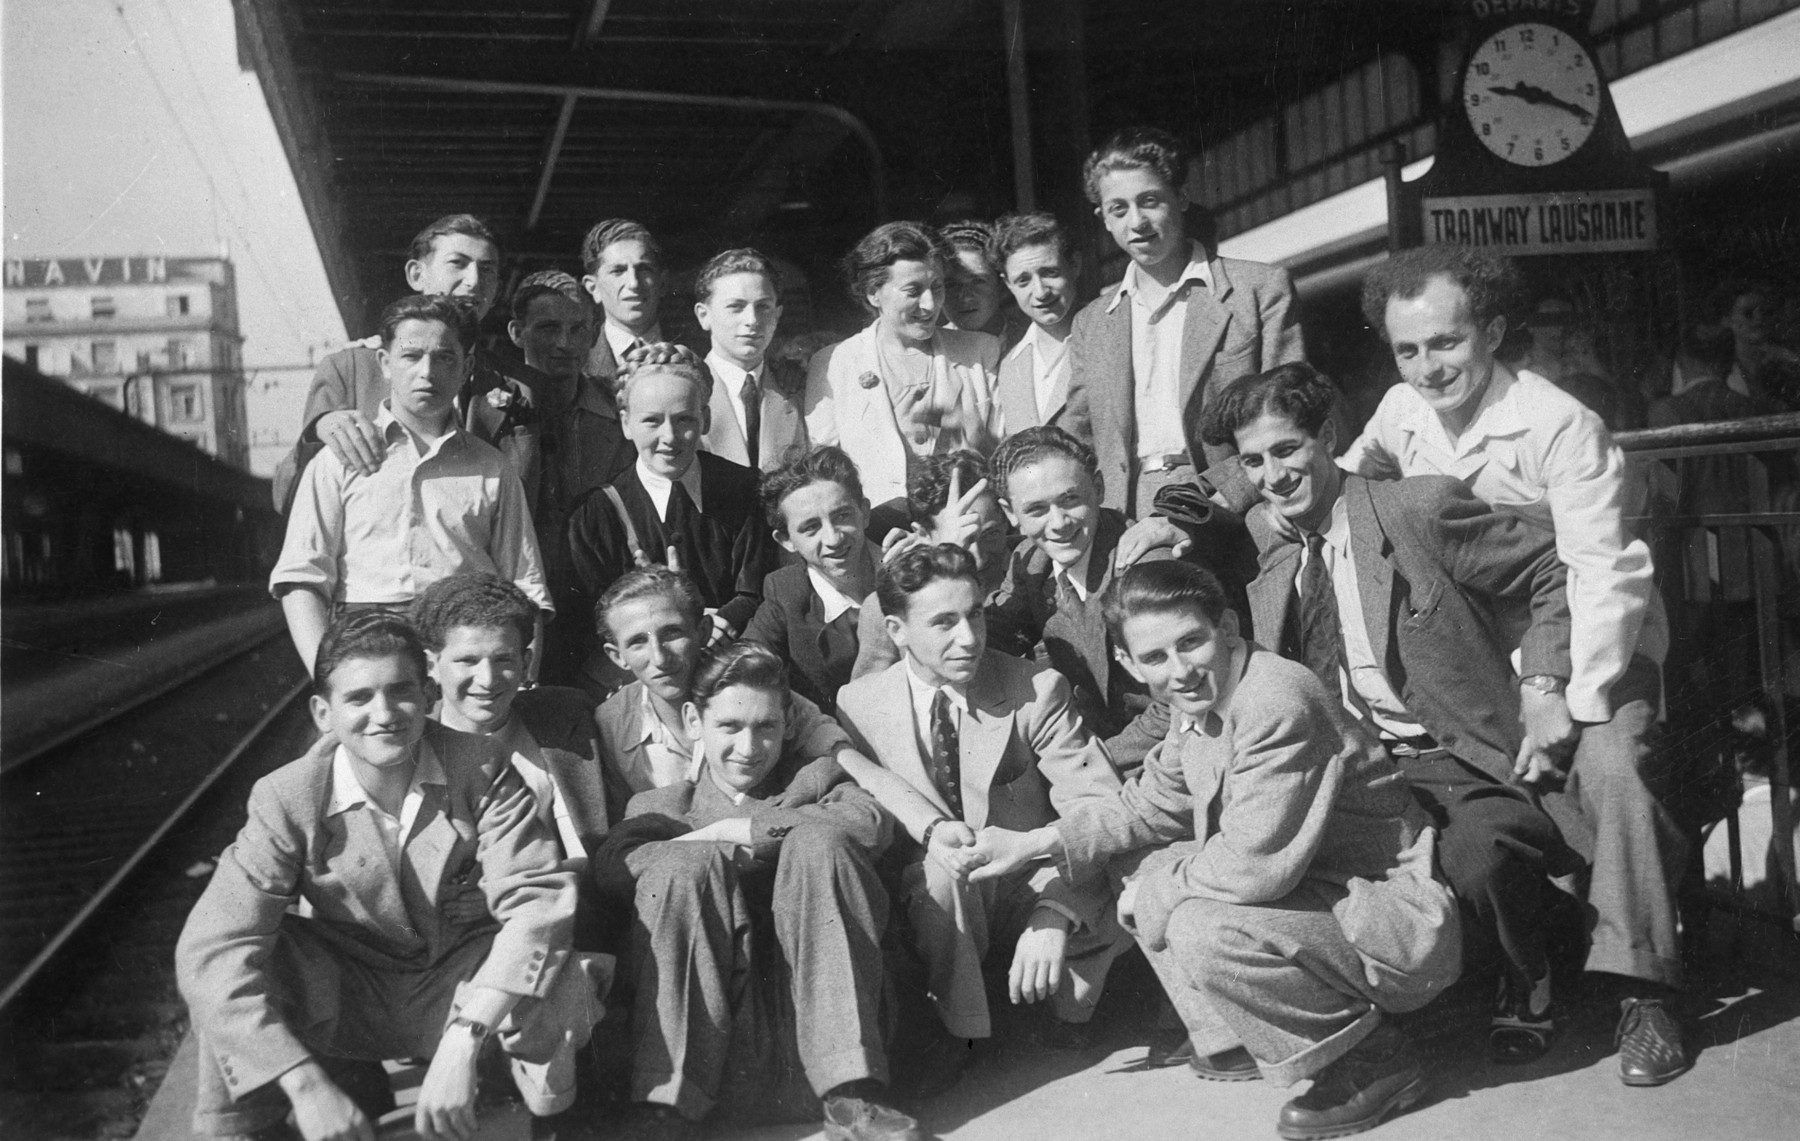 Group portrait of young Jewish survivors at a train station in Switzerland.  Among those pictured is David Gratz (Grac), standing the back row, fourth from the left.